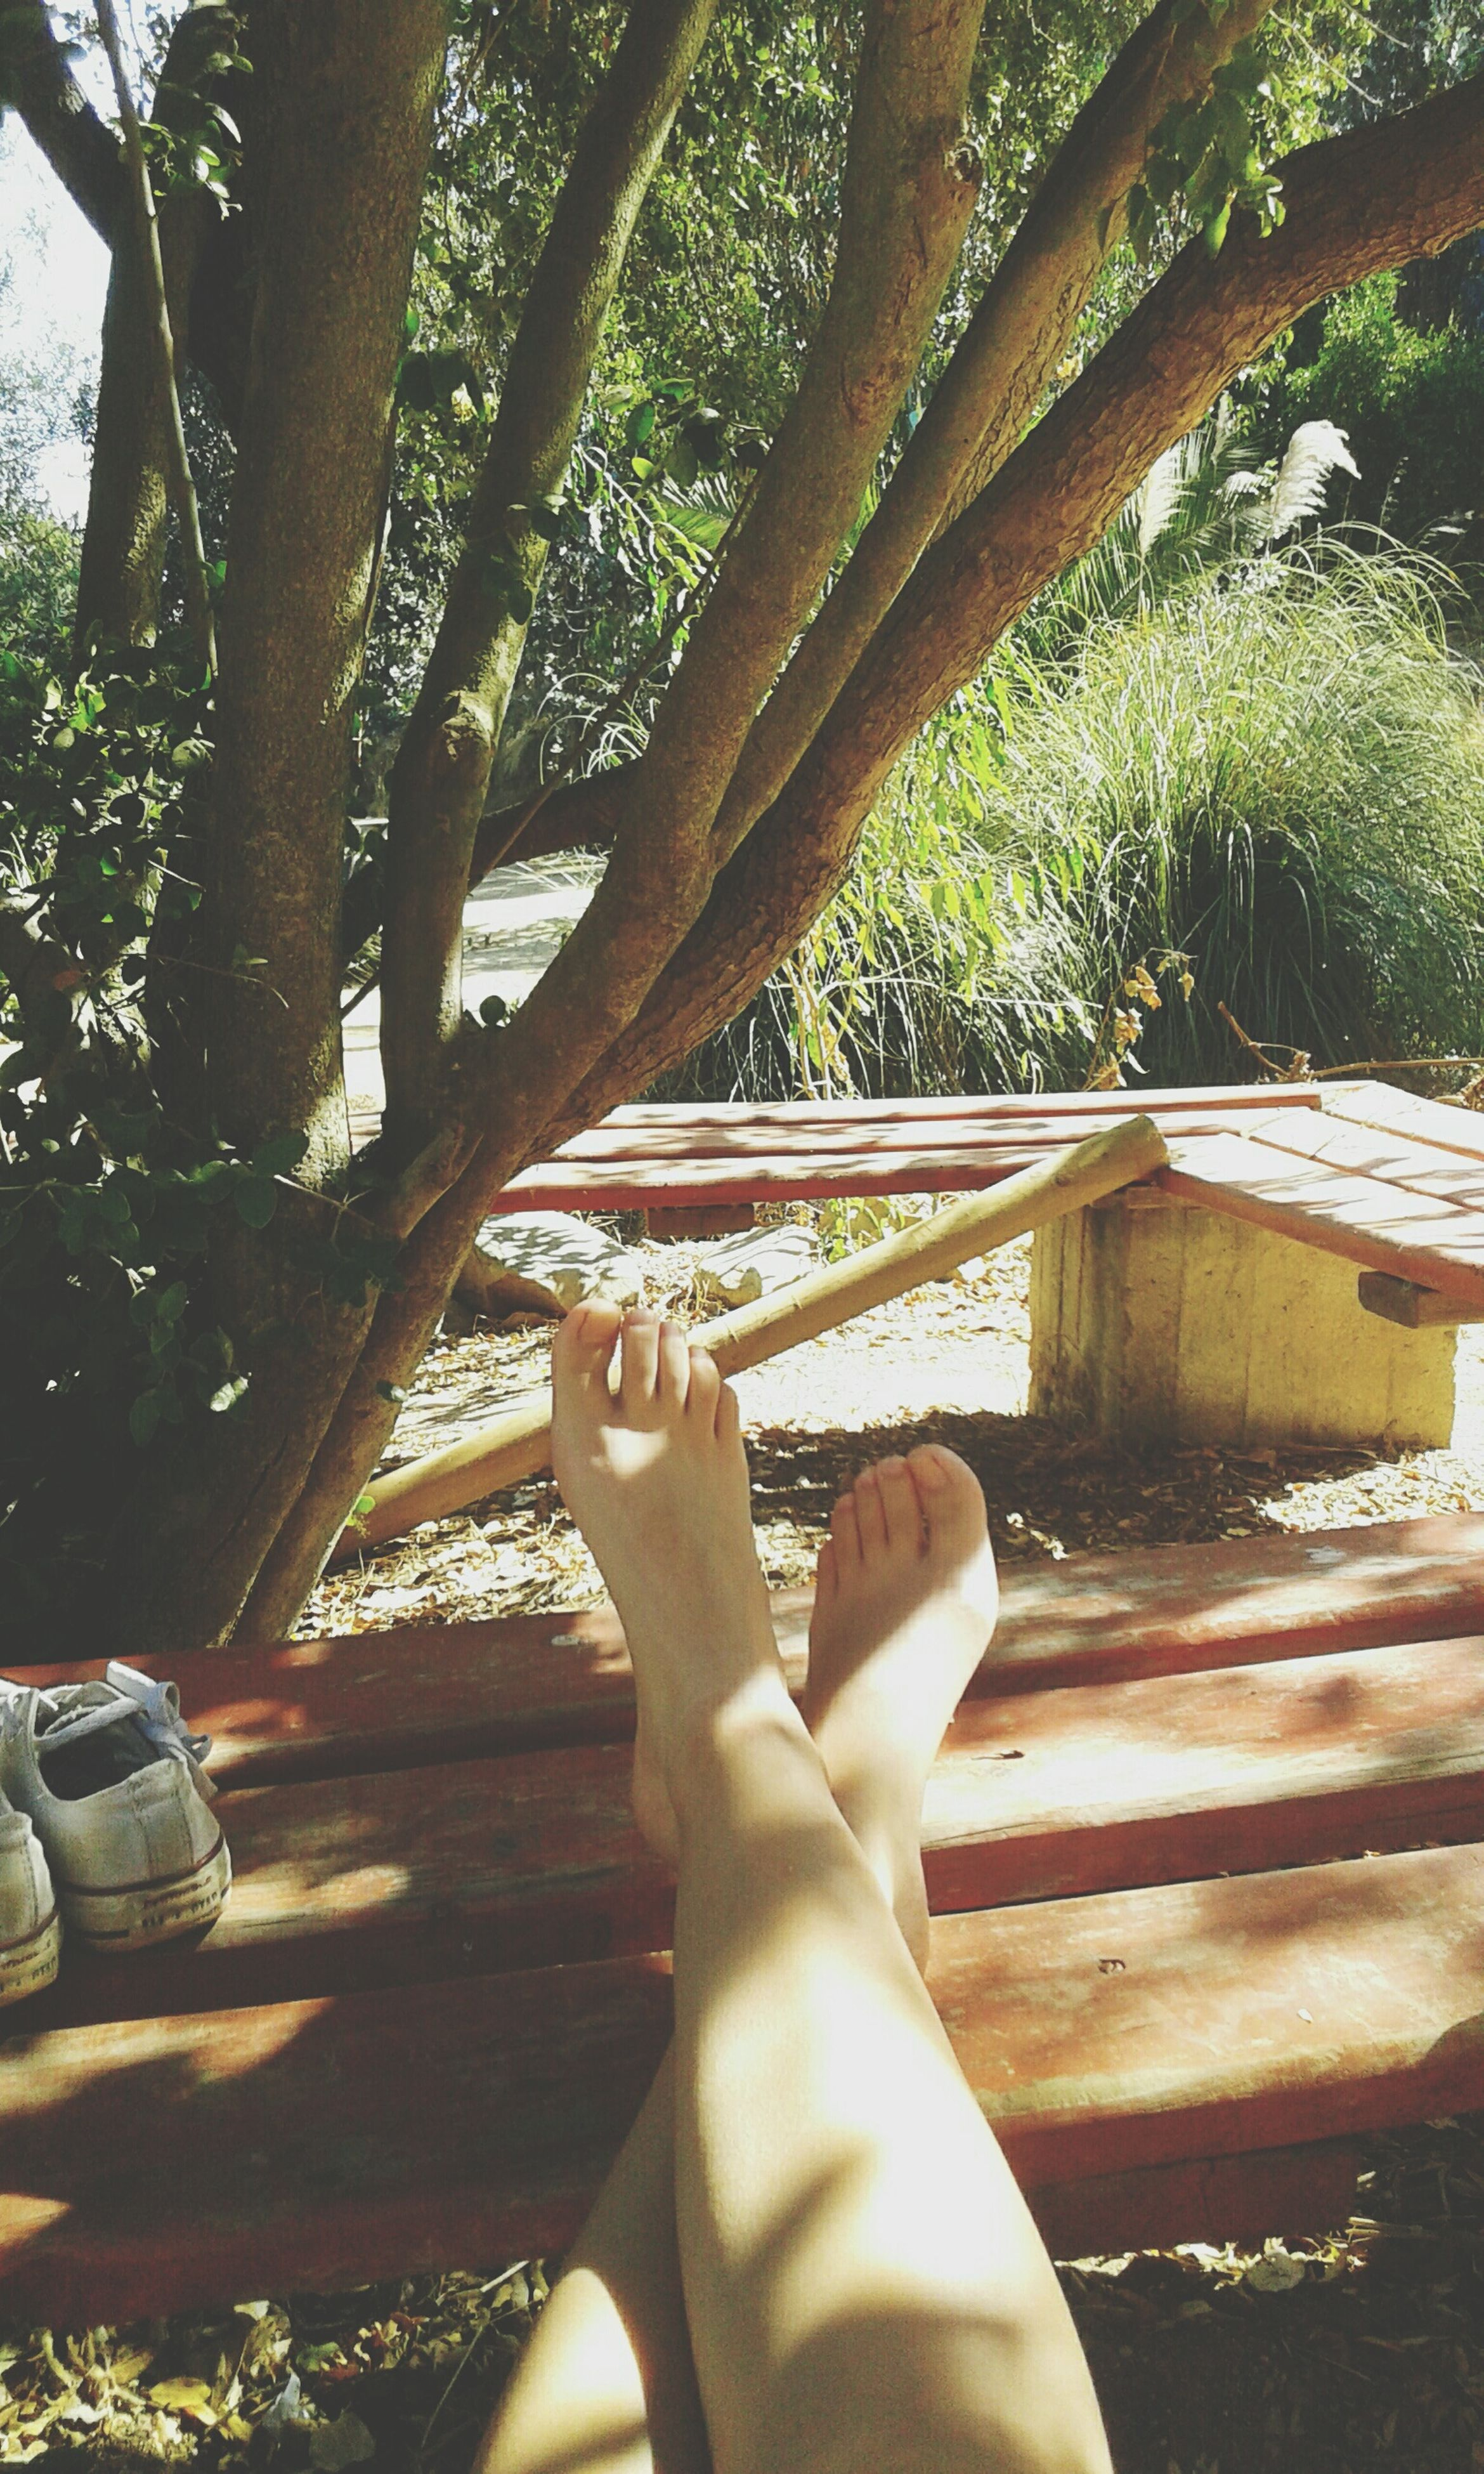 low section, person, personal perspective, tree, lifestyles, relaxation, leisure activity, human foot, barefoot, legs crossed at ankle, sitting, sunlight, resting, part of, relaxing, day